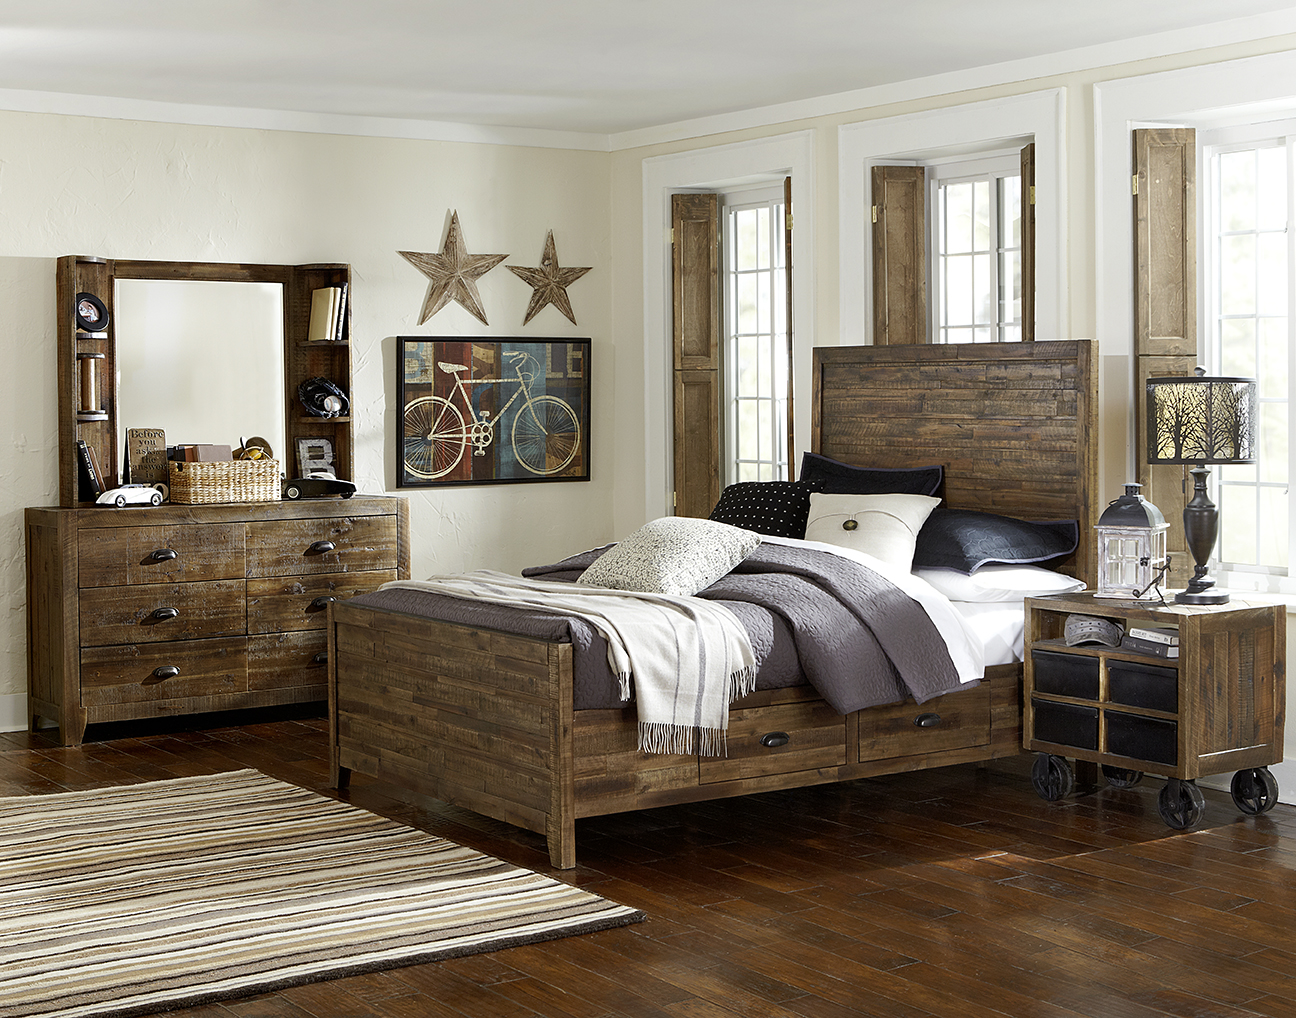 Braxton full bed w night stand & chest (no casters or drawers)